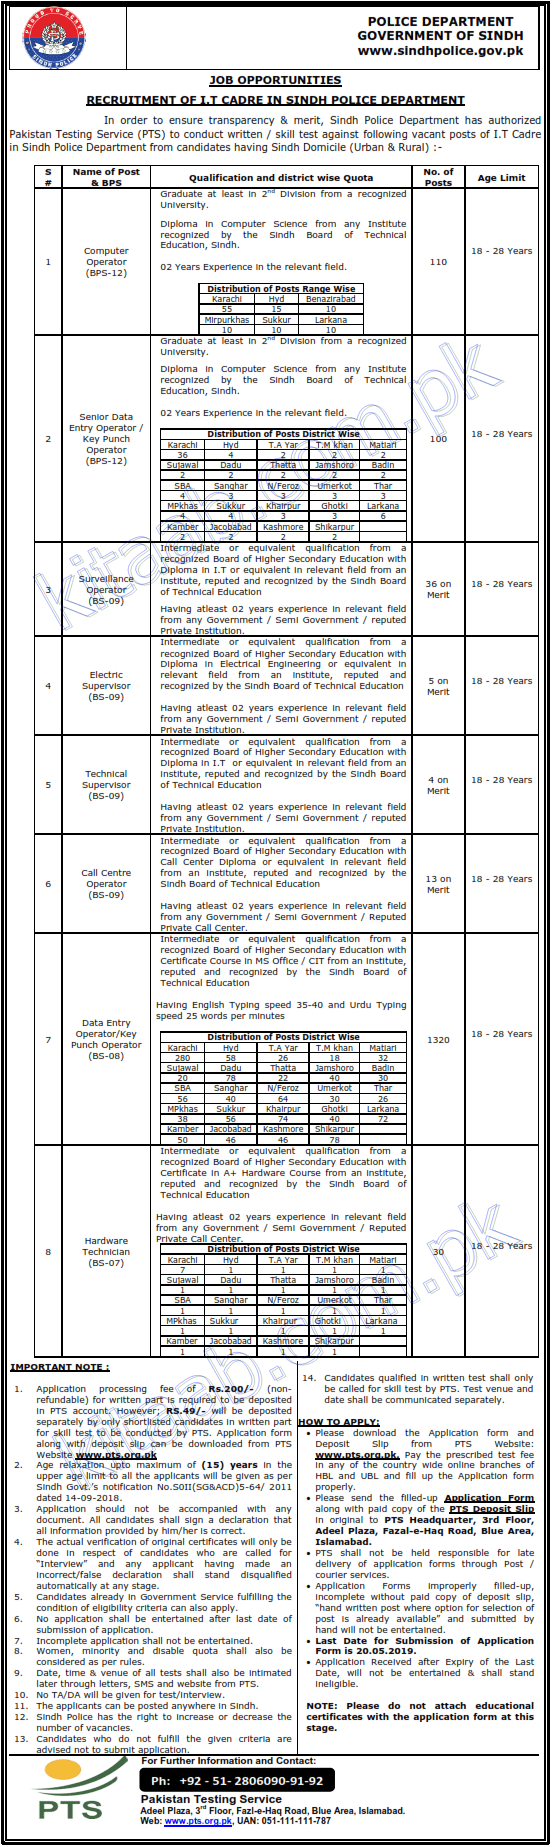 Sindh Police Department Information Technology Cadre Jobs 2019 PTS Application Form Roll Number Slips Last Date